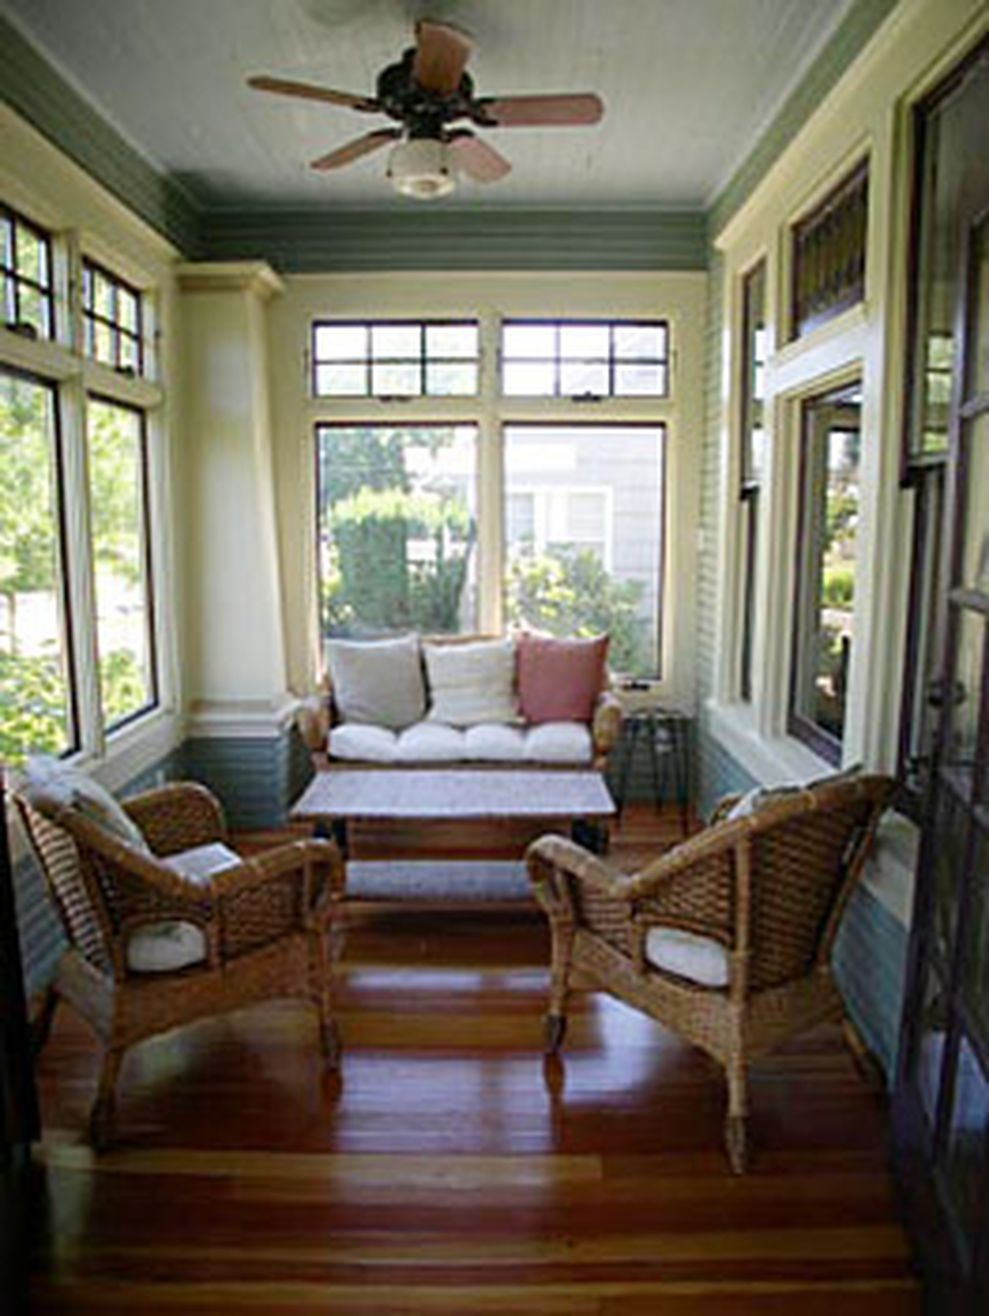 The Best Enclosed Porch Design And Decor Ideas 22